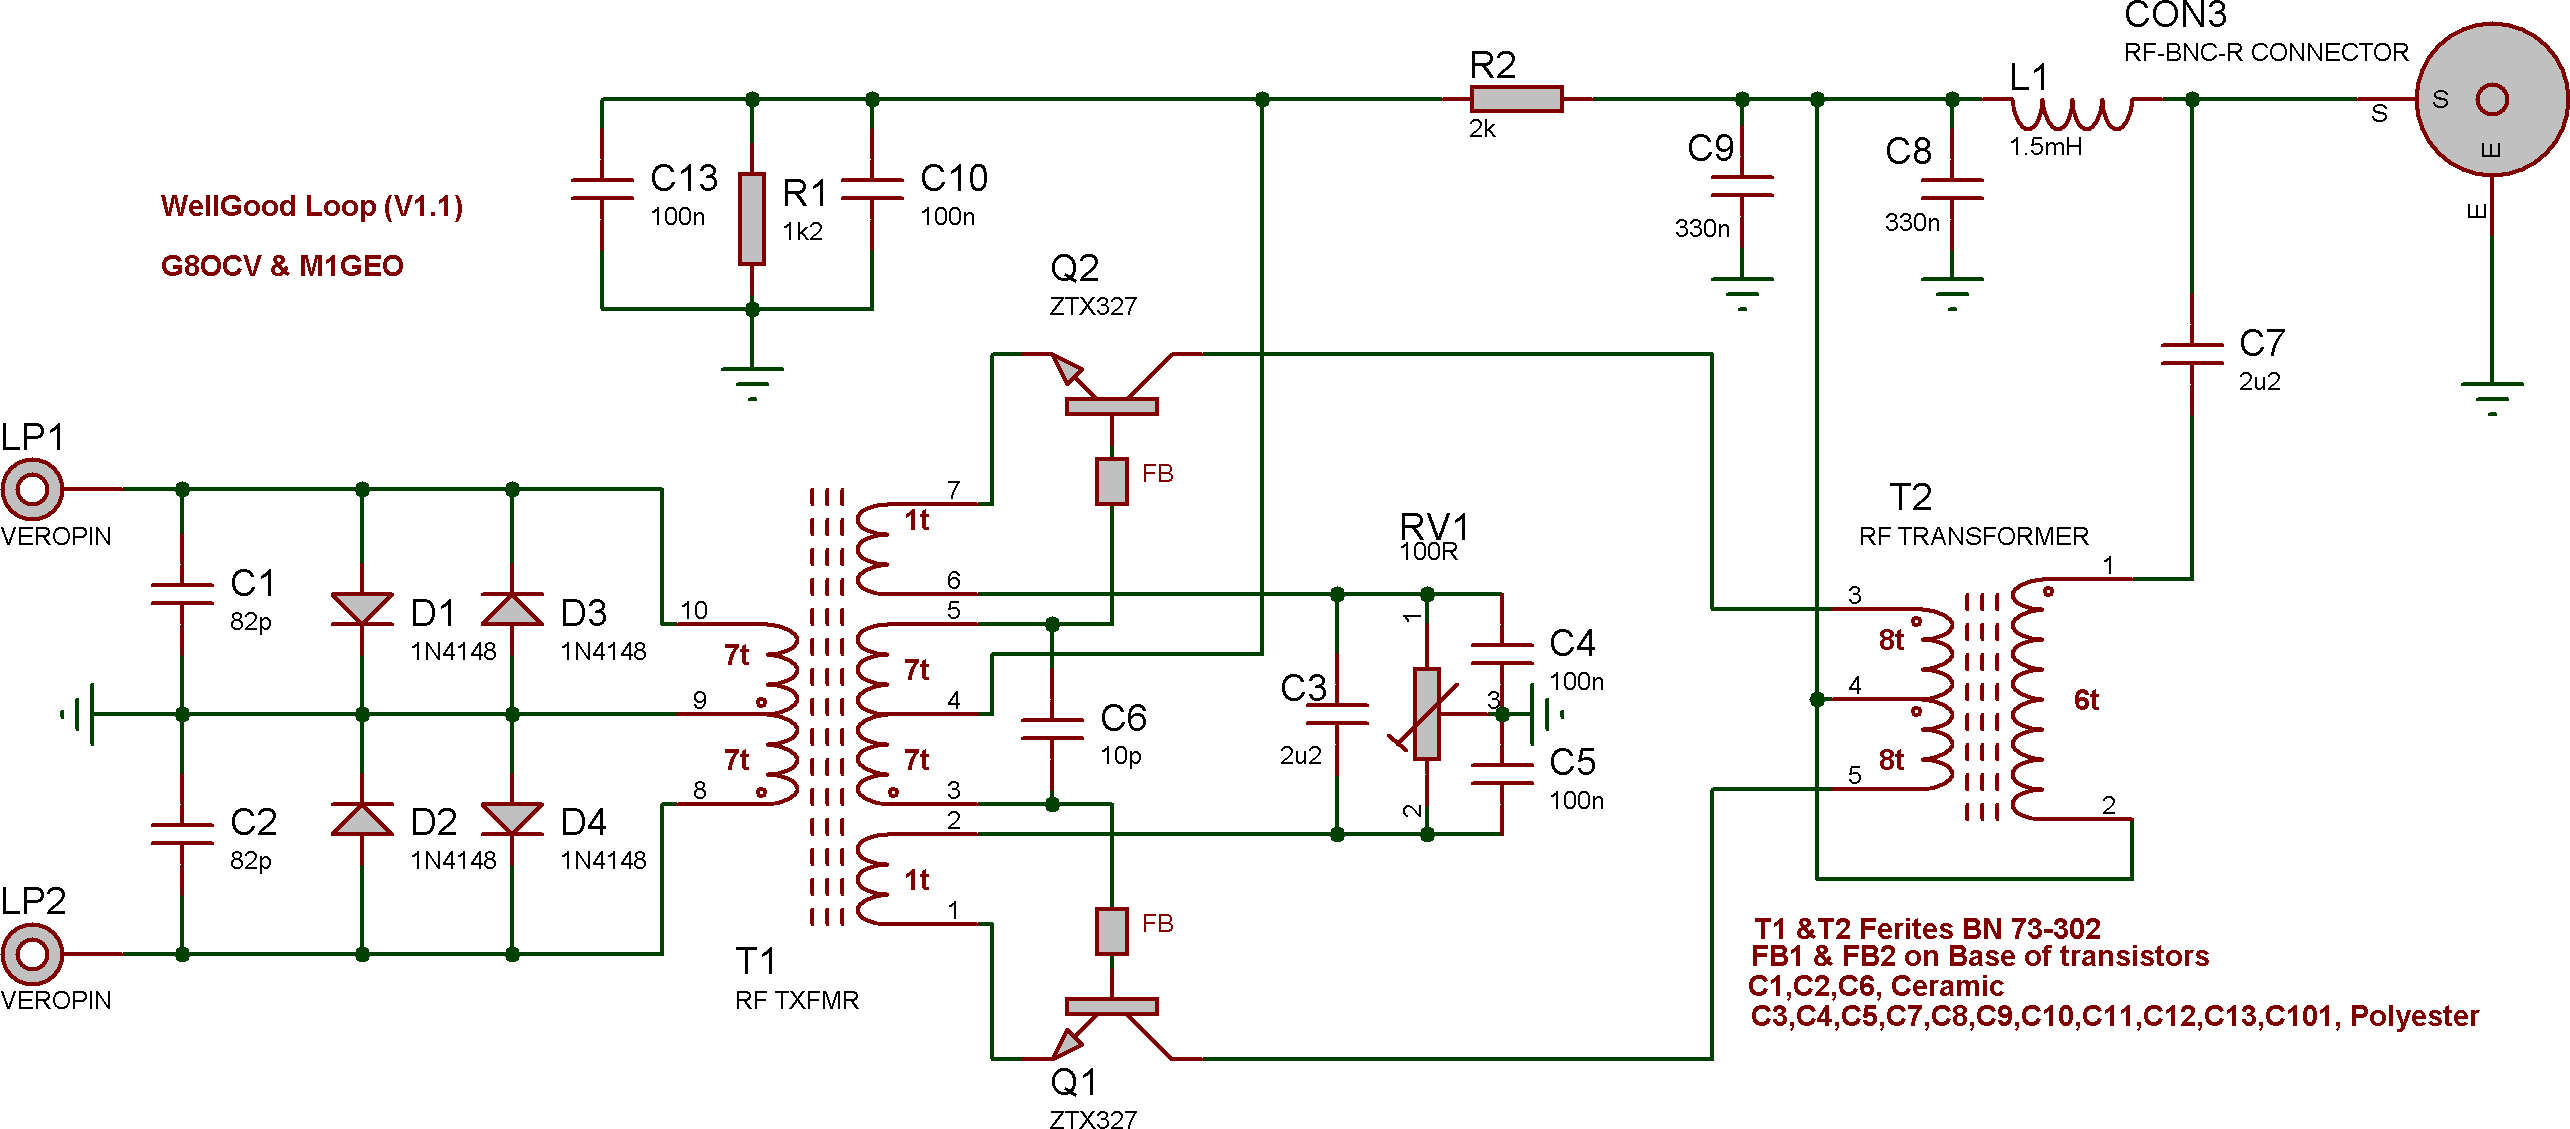 3_507_1578216700_wgl_schematic.png